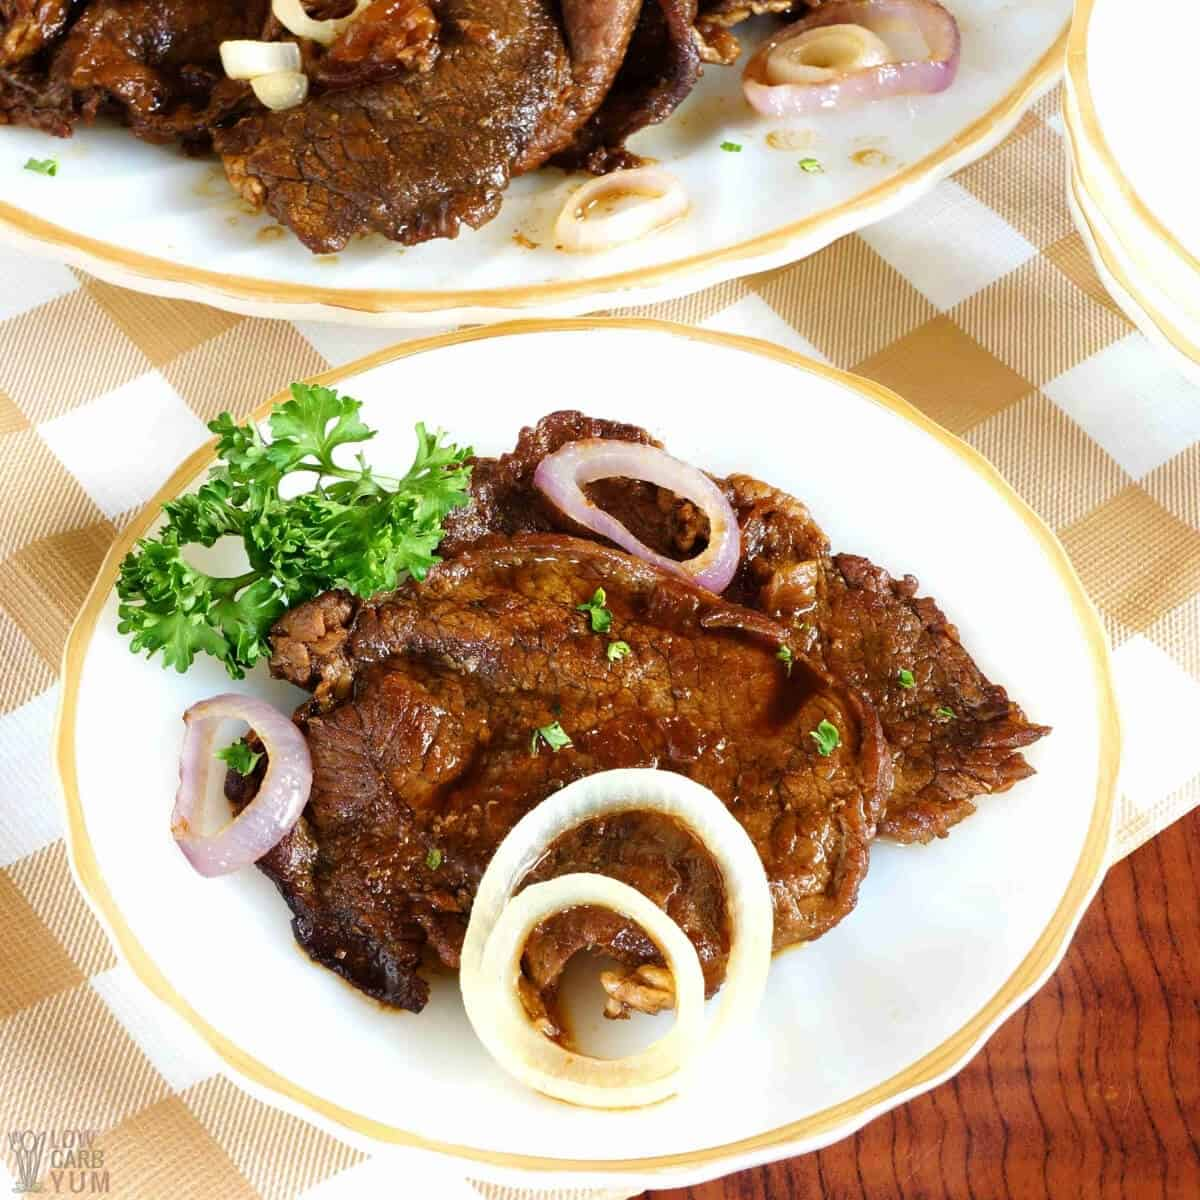 filipino beef steak bistek recipe on plates